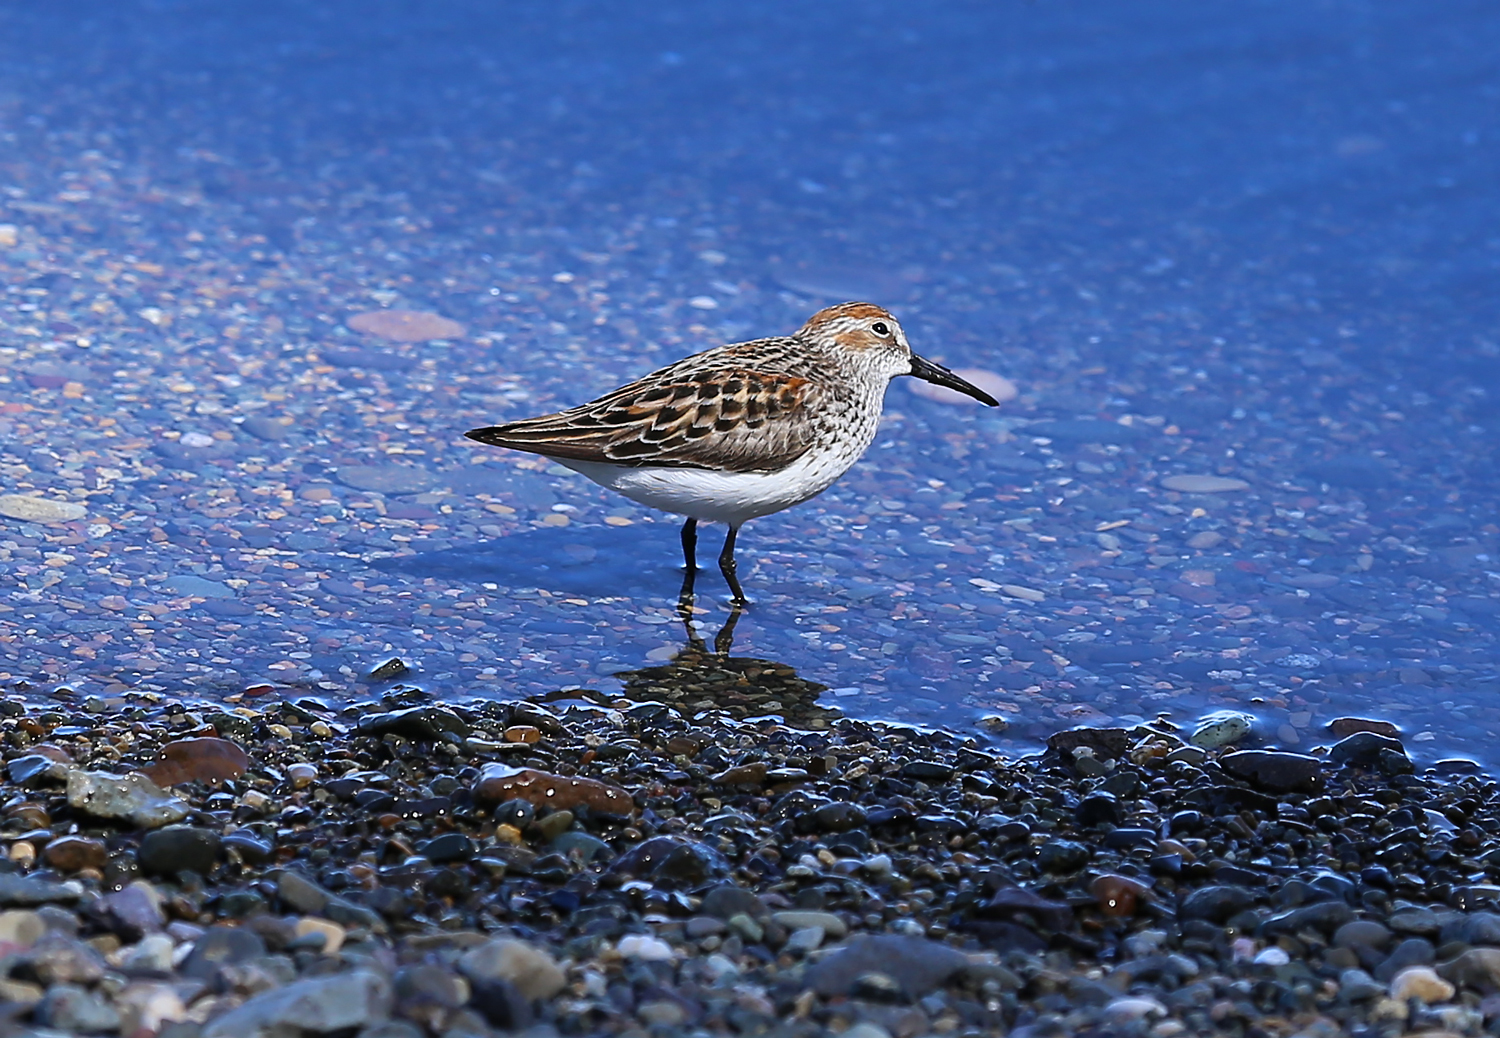 The sandpipers tilted their heads often, watching the sky for predatory birds.